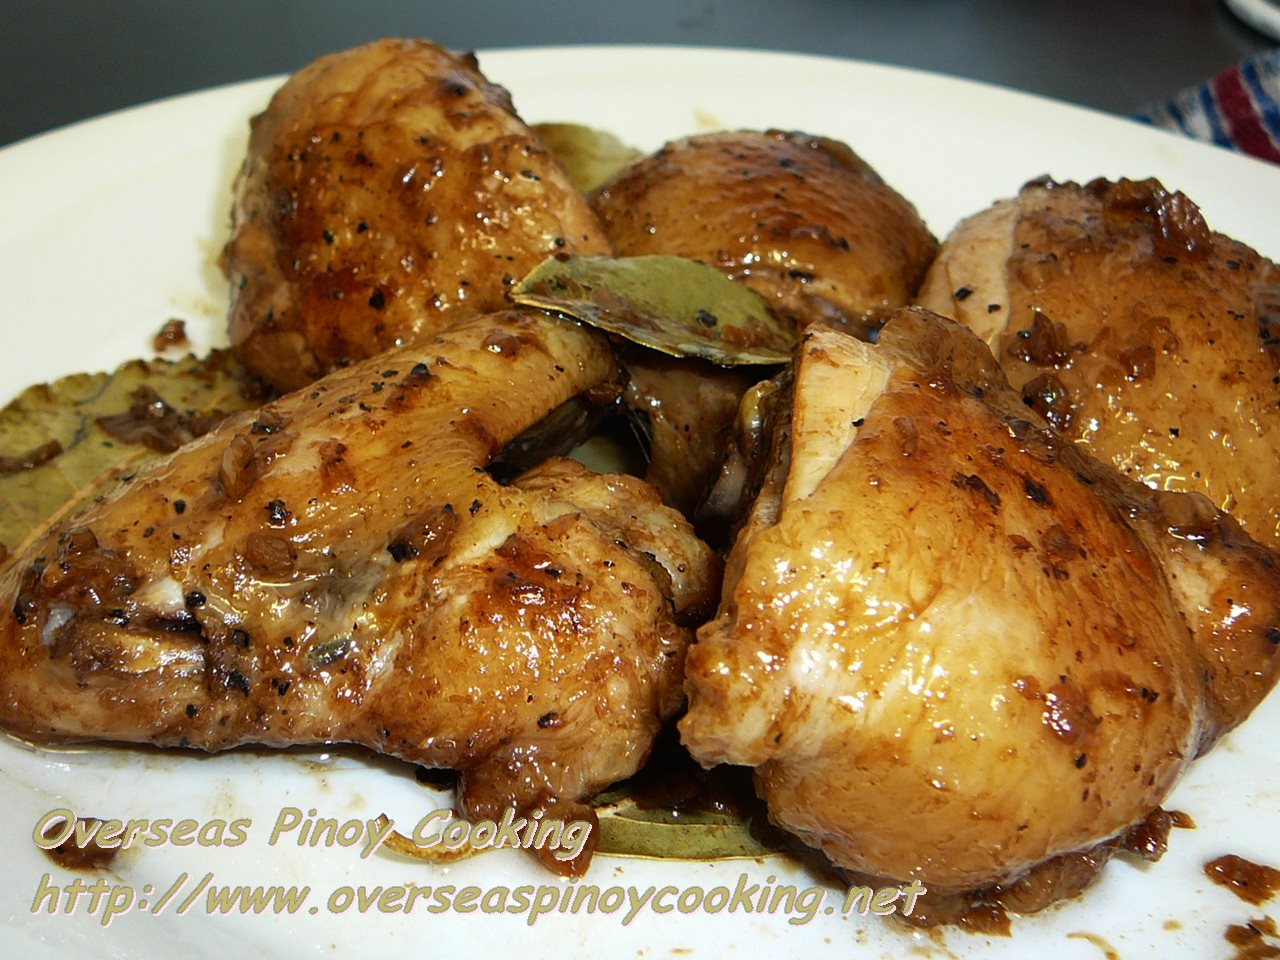 Chicken Adobo, Food Safari Chef Ricky Ocampo's Recipe